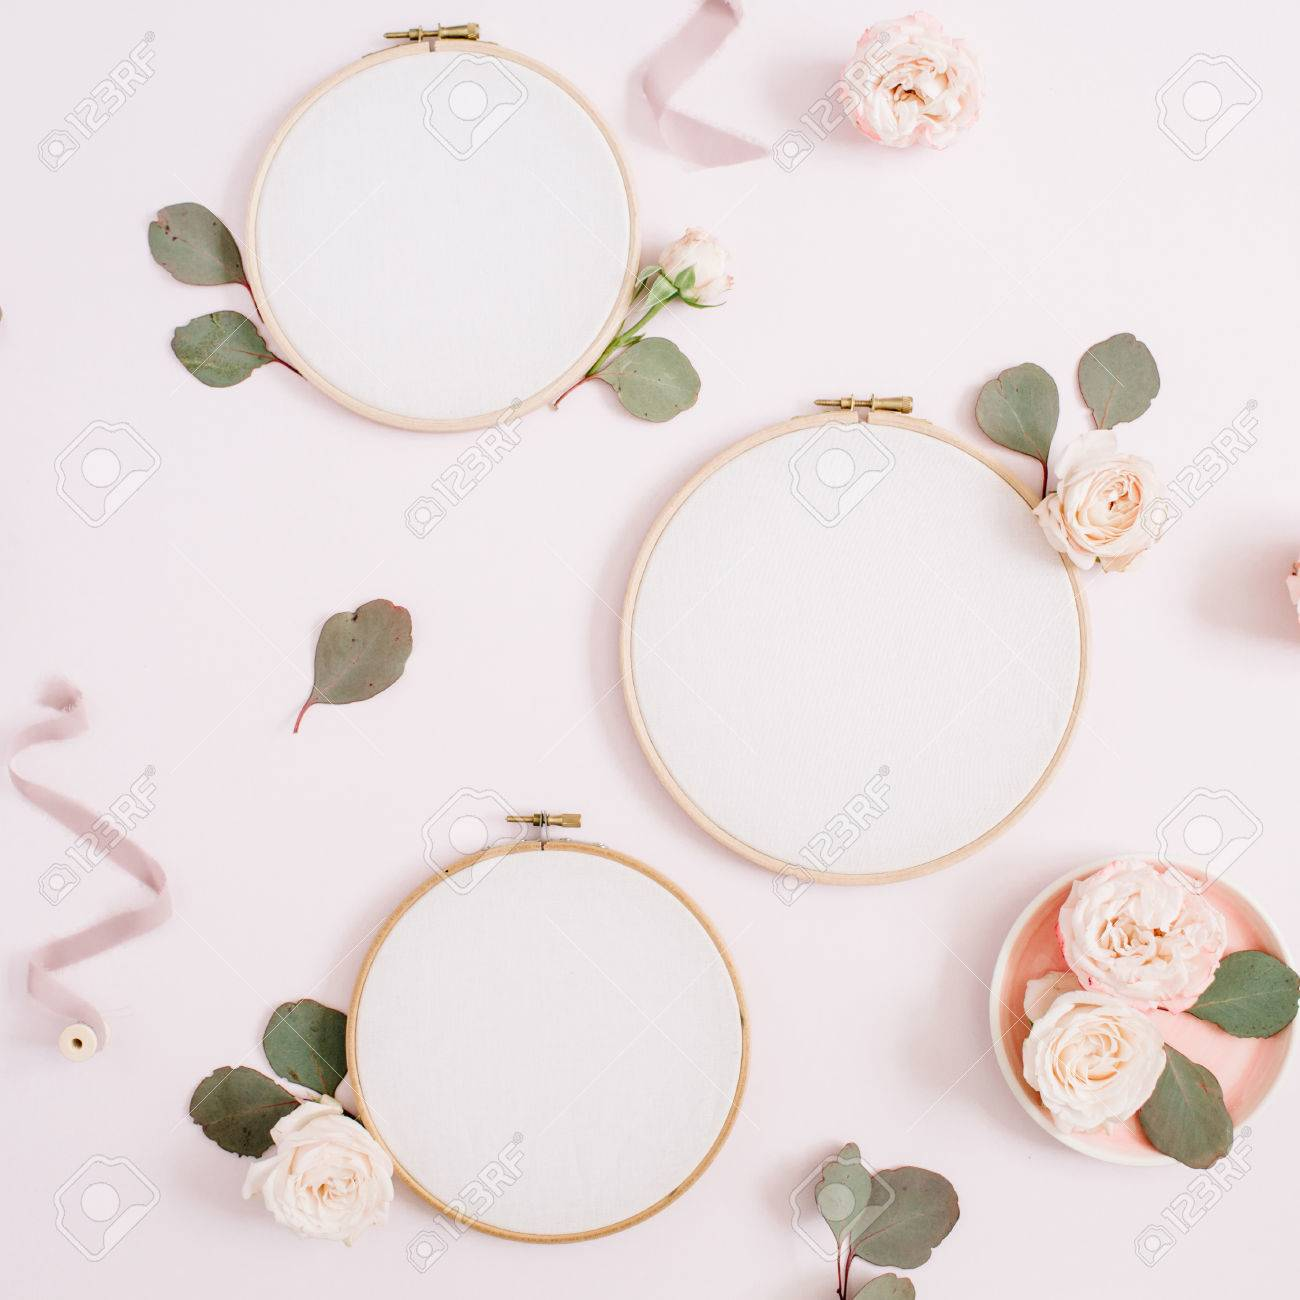 embroidery frames with beige rose flower buds and eucalyptus on pale pastel pink background flat - Embroidery Frames